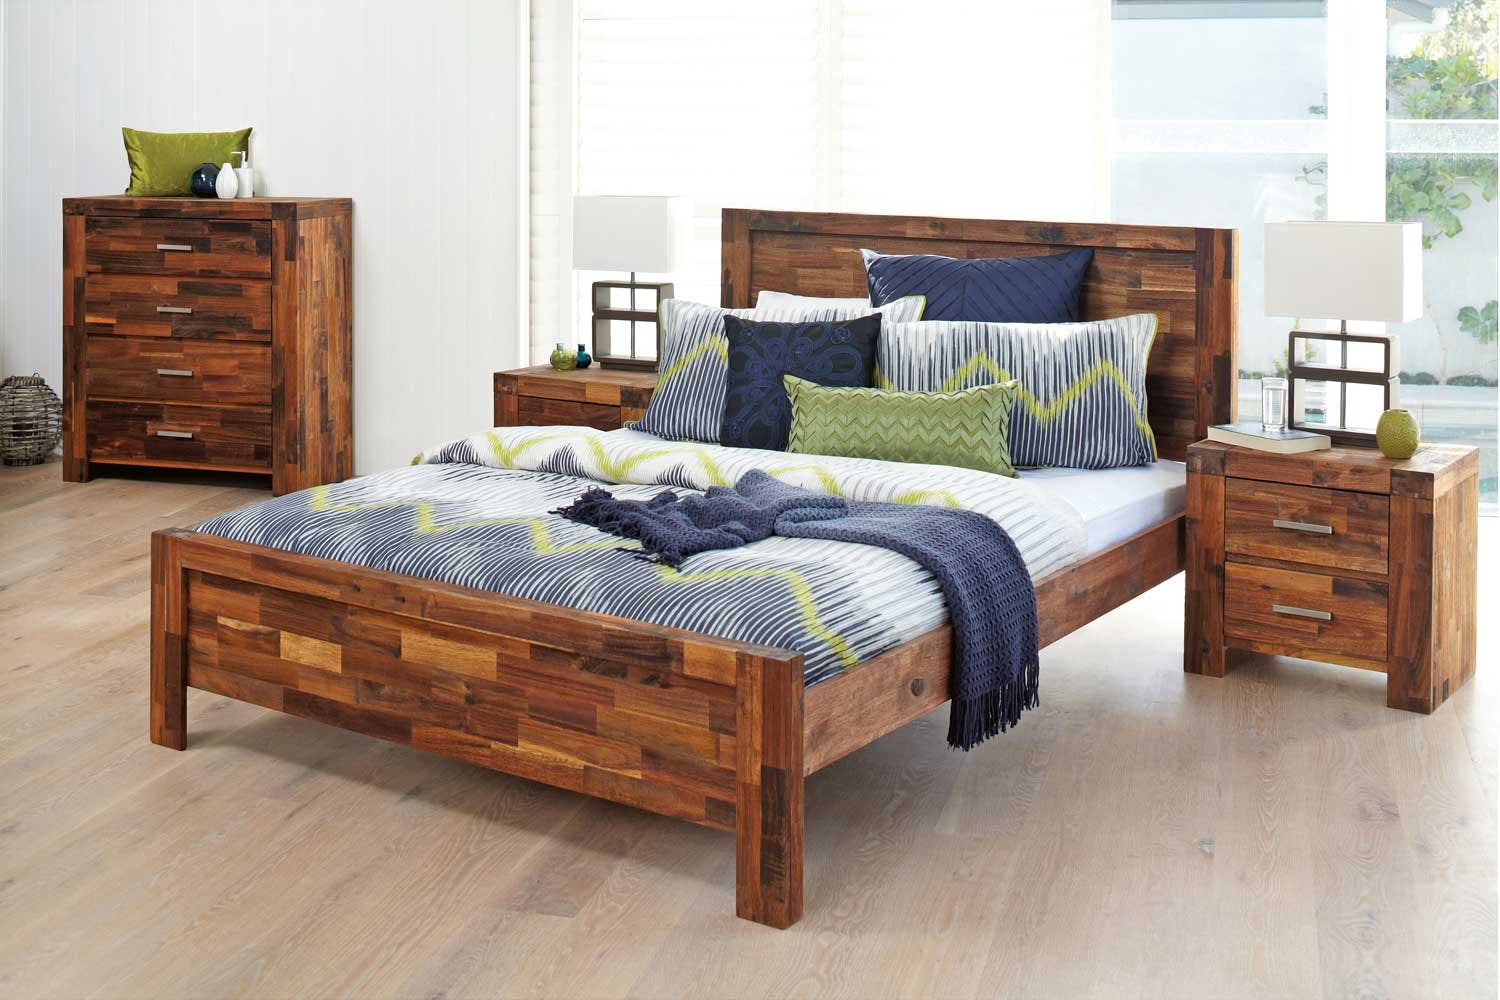 solomon queen bedroom suite by nero furniture harvey norman new zealand. Black Bedroom Furniture Sets. Home Design Ideas